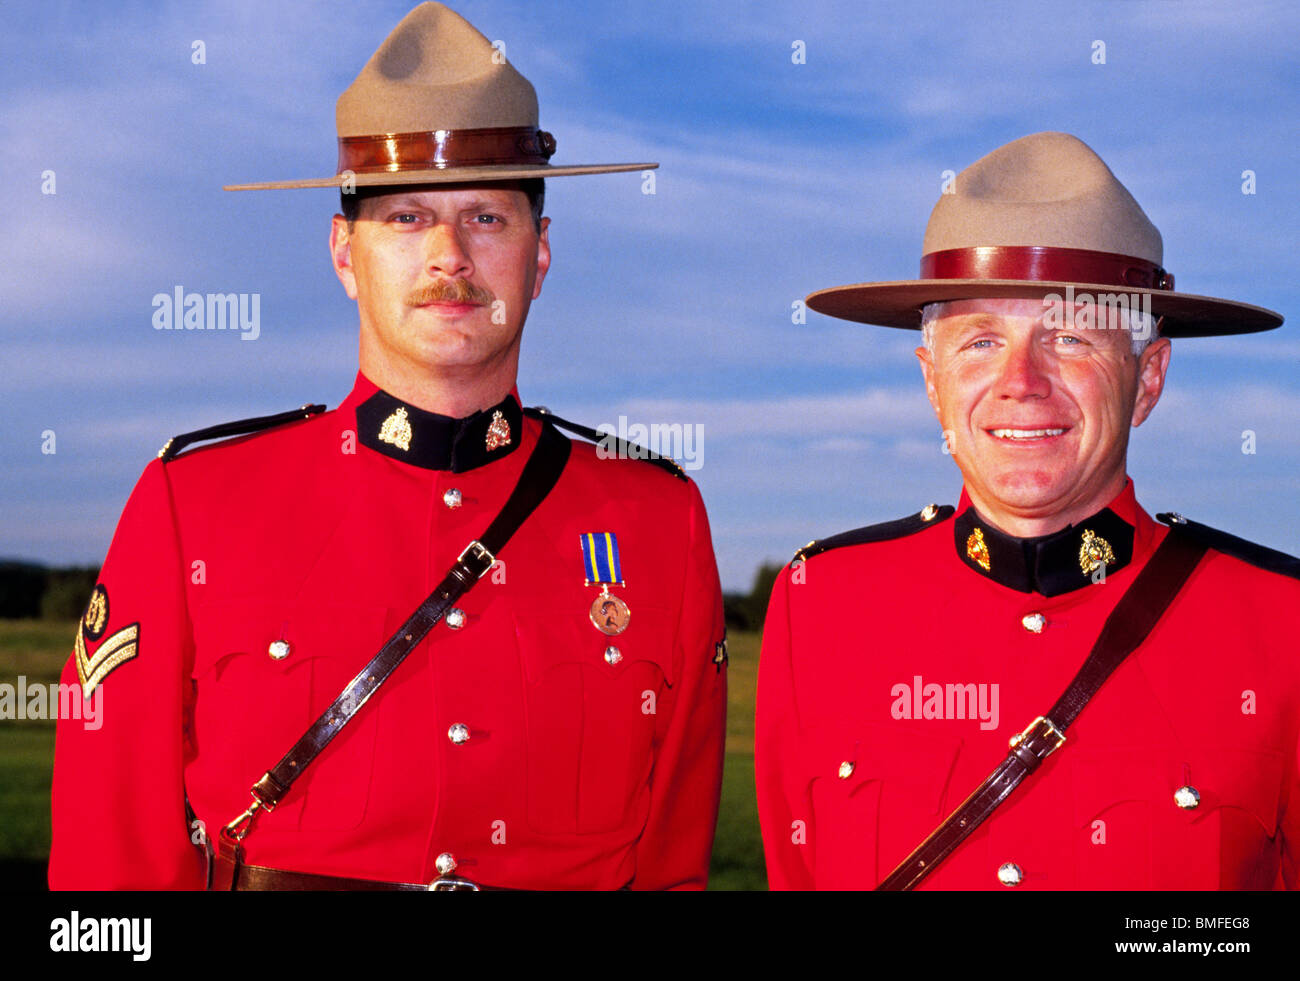 Two Smiling Royal Canadian Mounted Police In Their